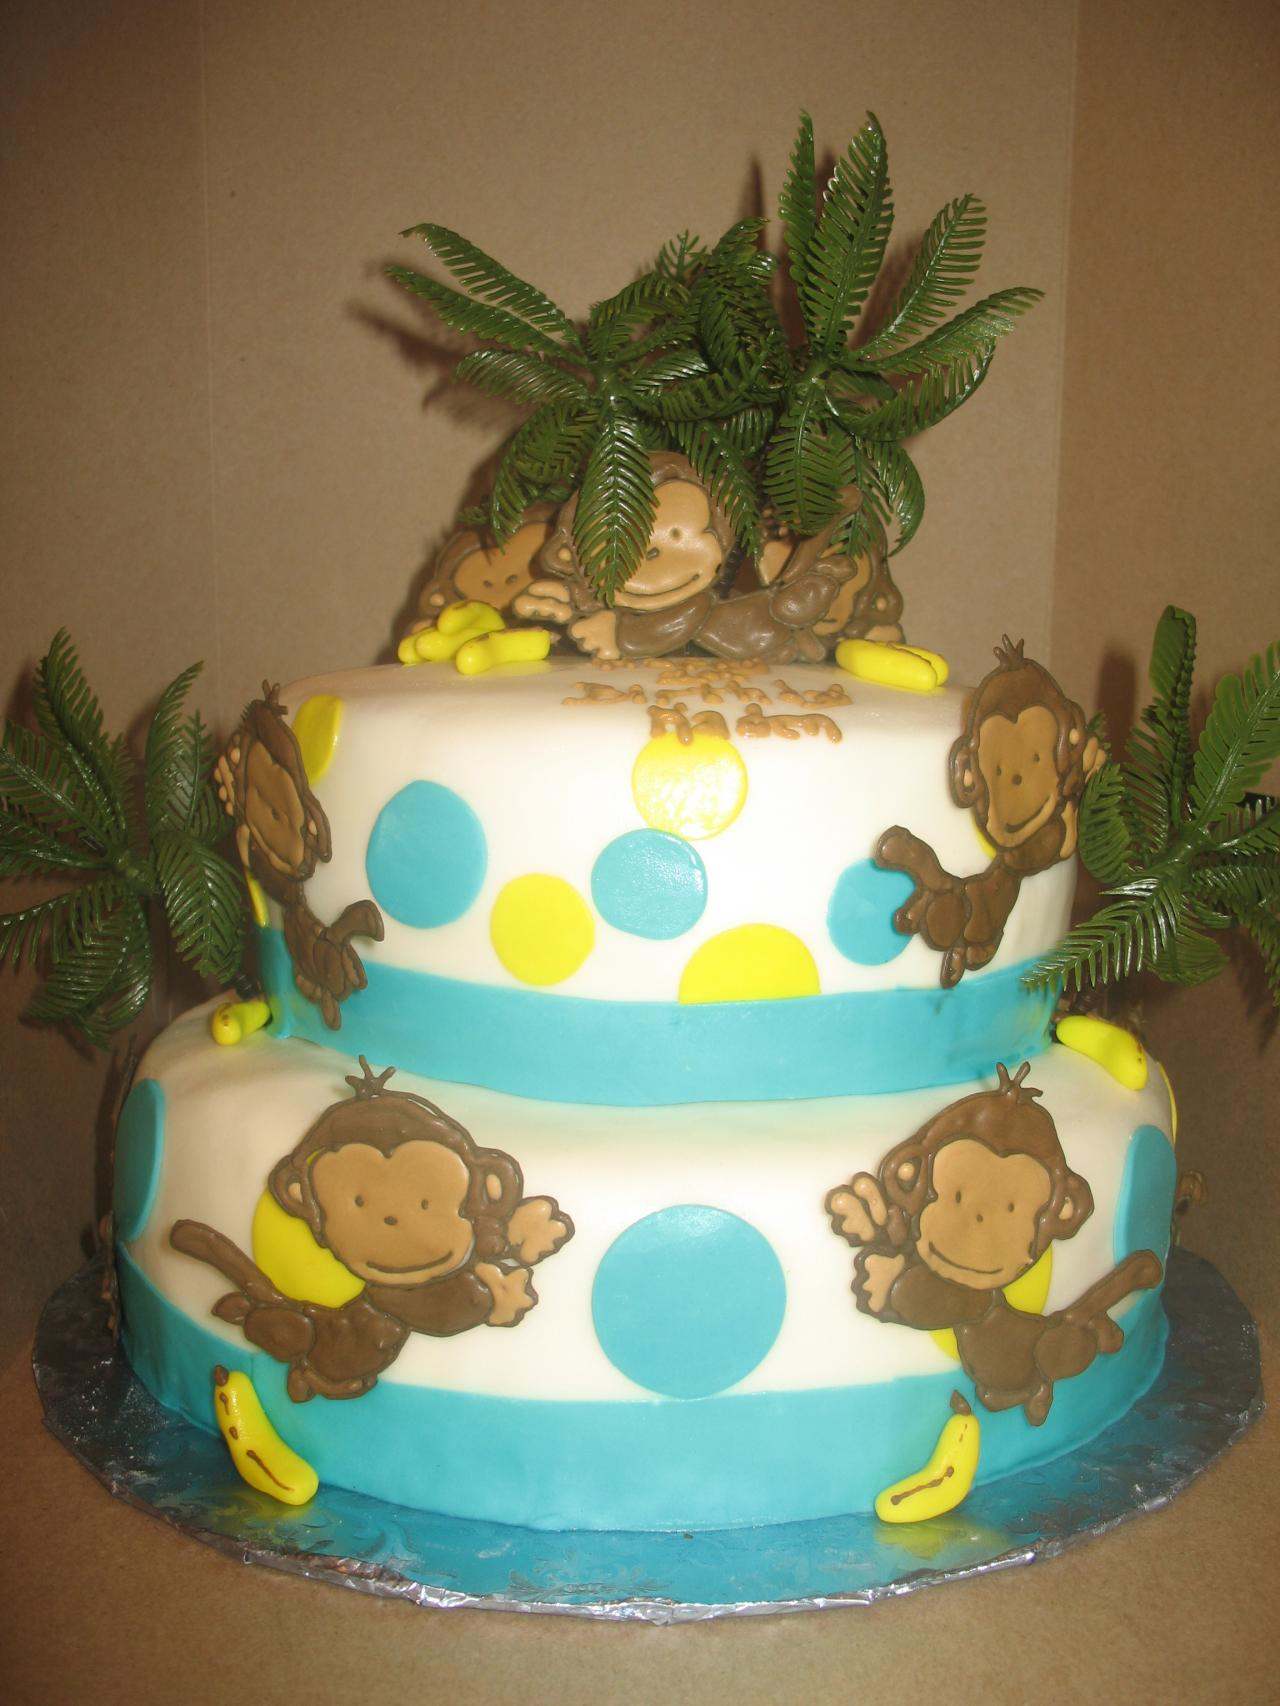 Birthday Cake Ideas Monkey : Monkey Cakes   Decoration Ideas Little Birthday Cakes